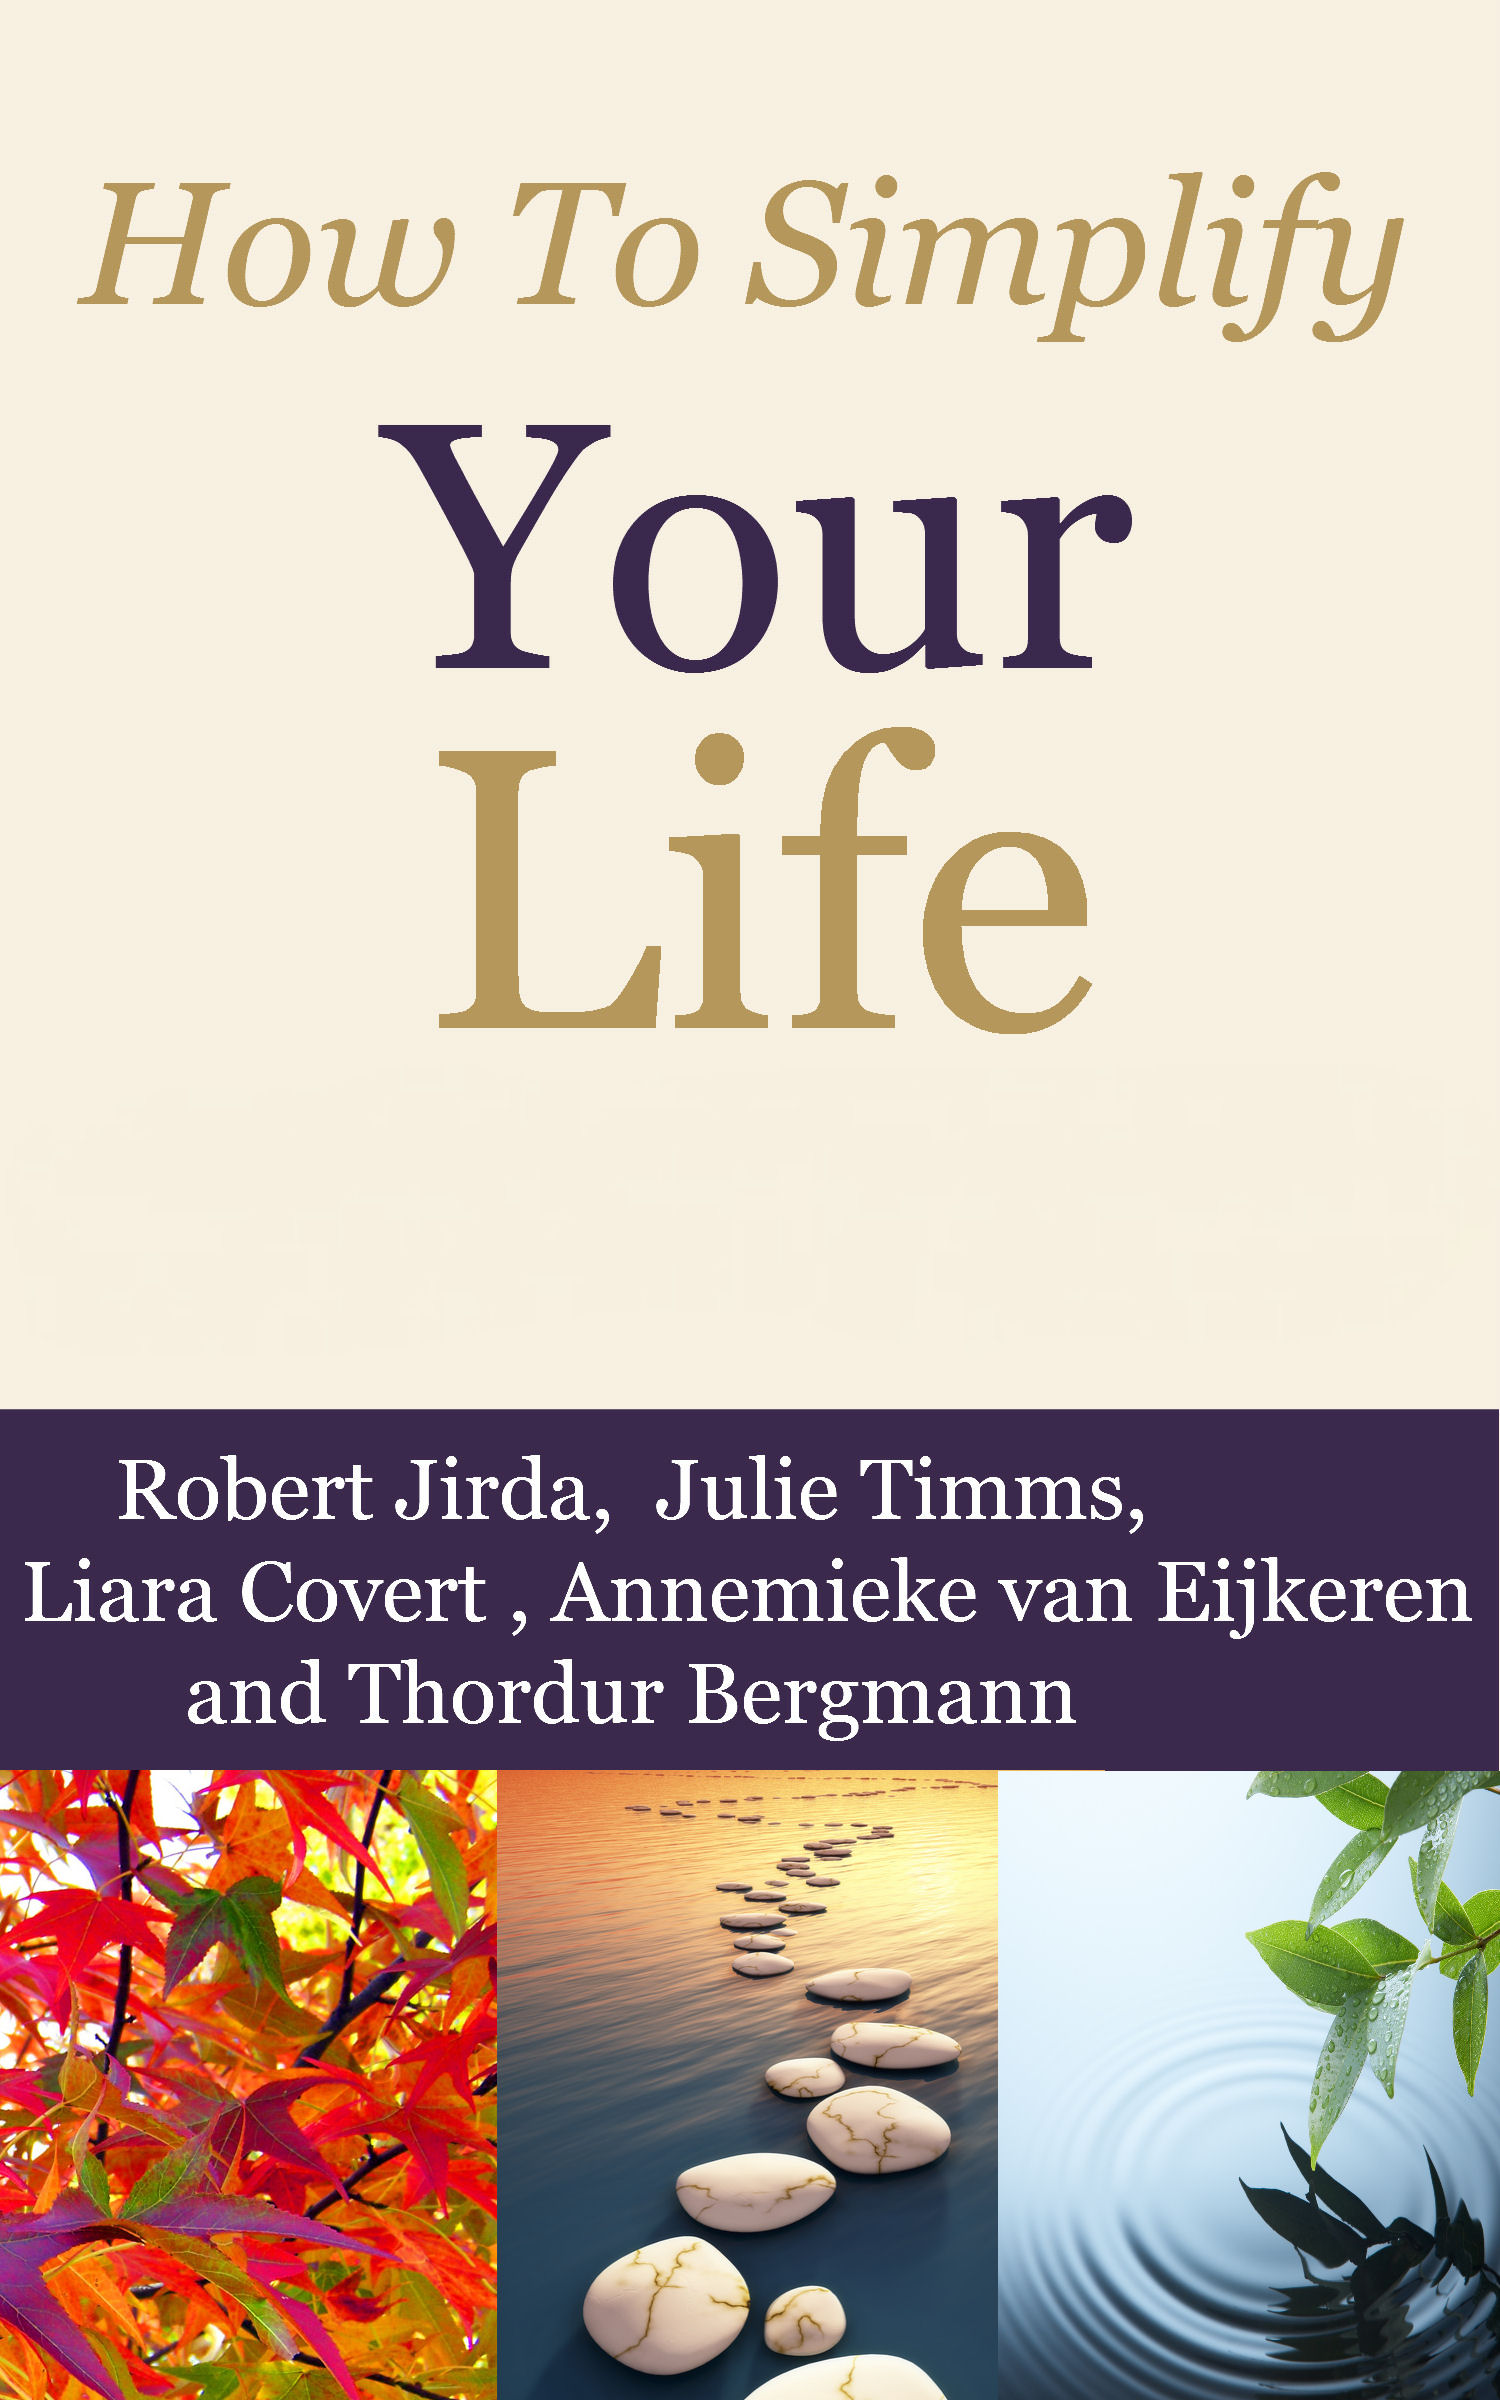 Simplify Life Quotes How To Simplify Your Life  Inspirational Quotes Books & Articles